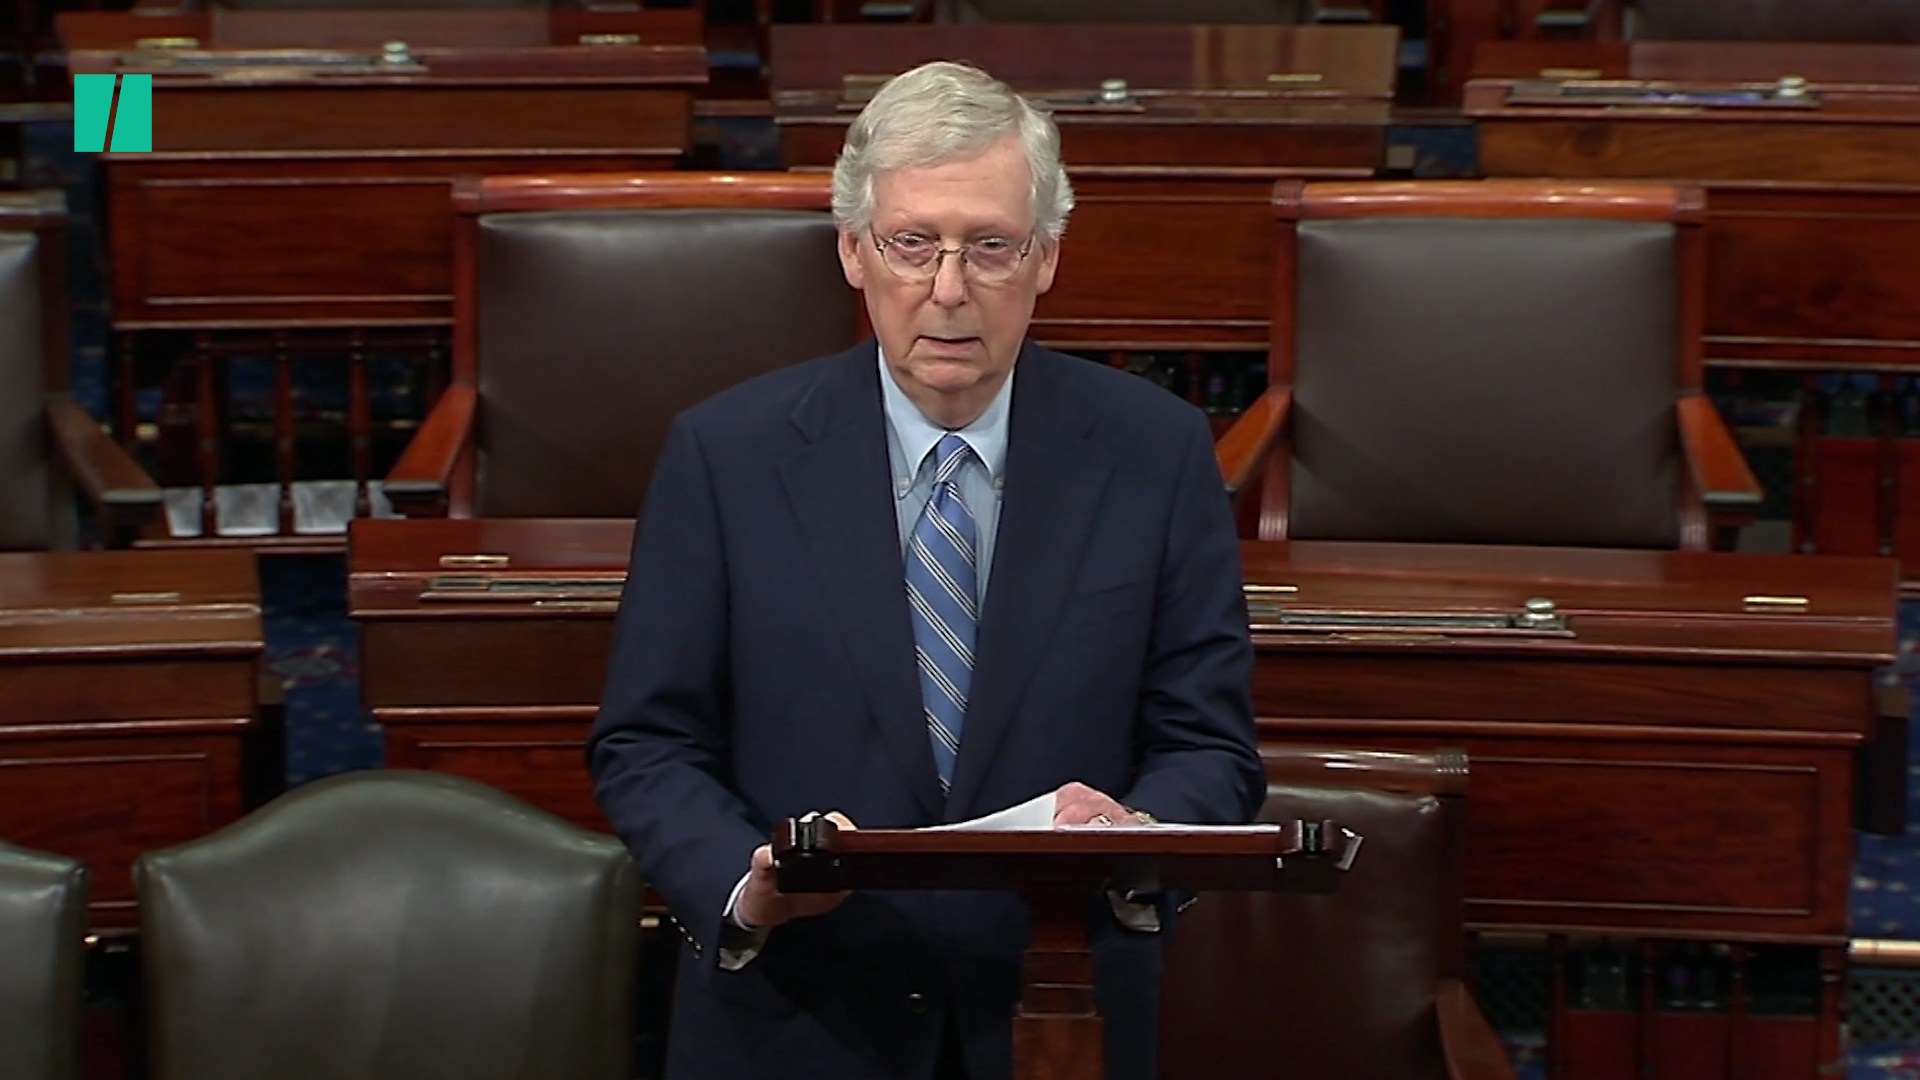 Mitch McConnell Rails Against 'Moscow Mitch' Nickname: It's 'Over The Top'